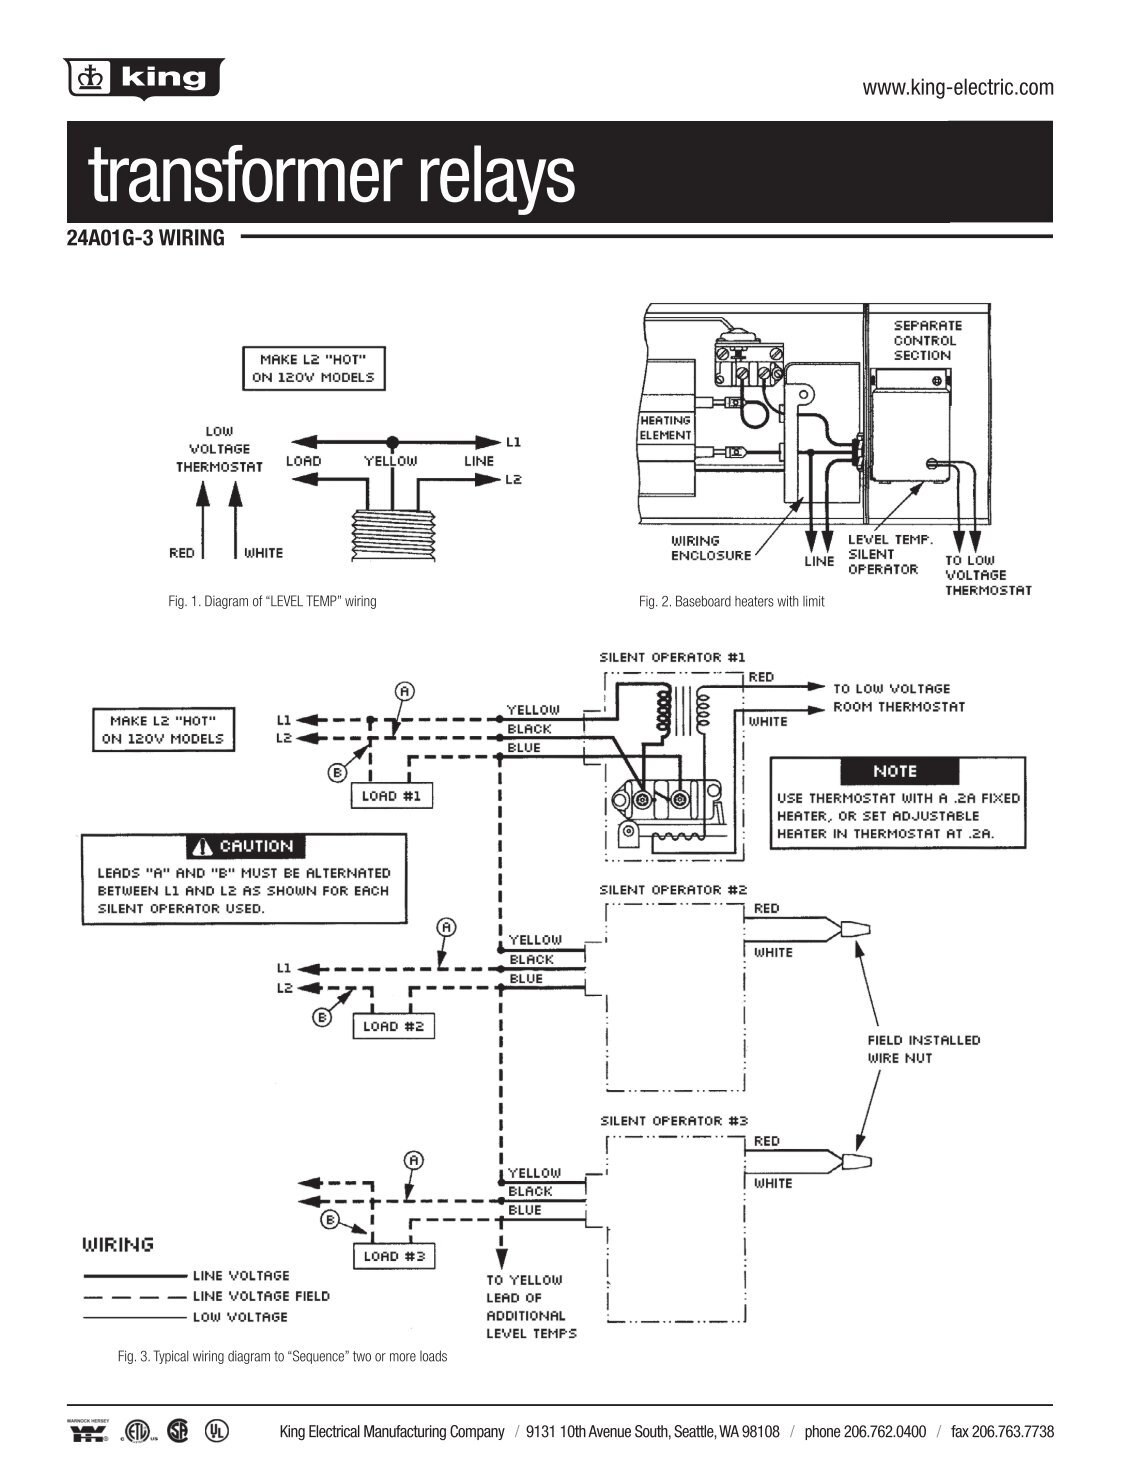 Hunter Thermostat Wiring Diagram 44377 - wiring diagrams